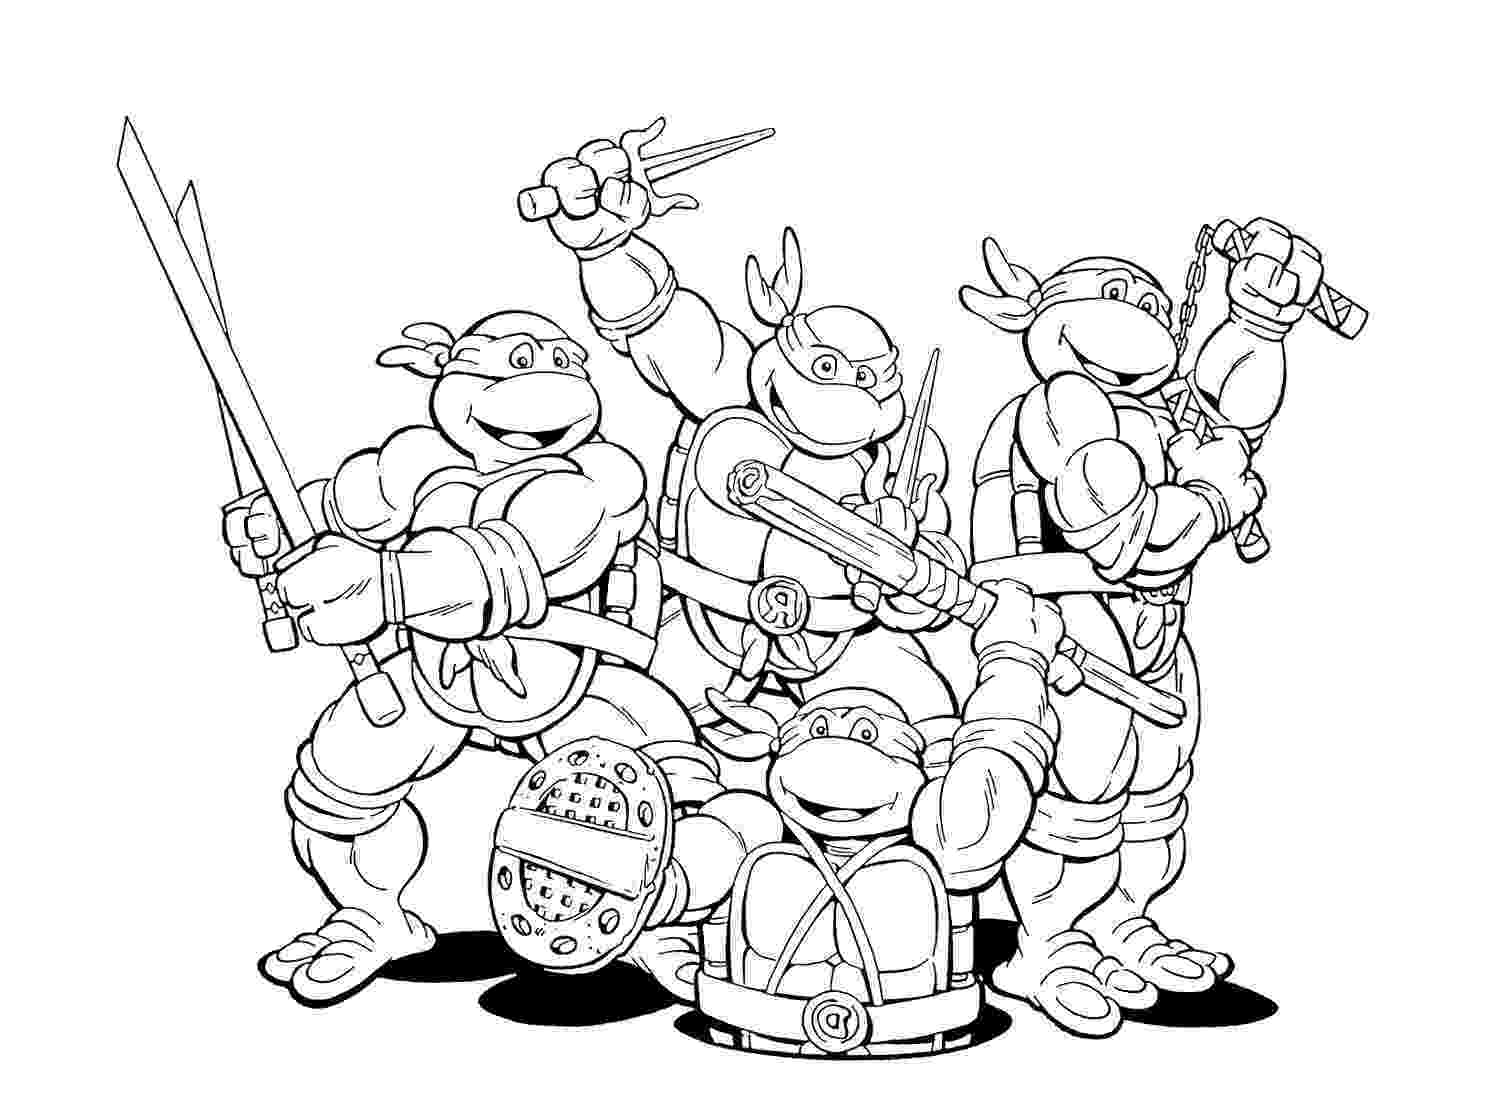 teenage mutant ninja turtles coloring pages 19 best images about coloring tmnt on pinterest cartoon coloring turtles teenage mutant pages ninja